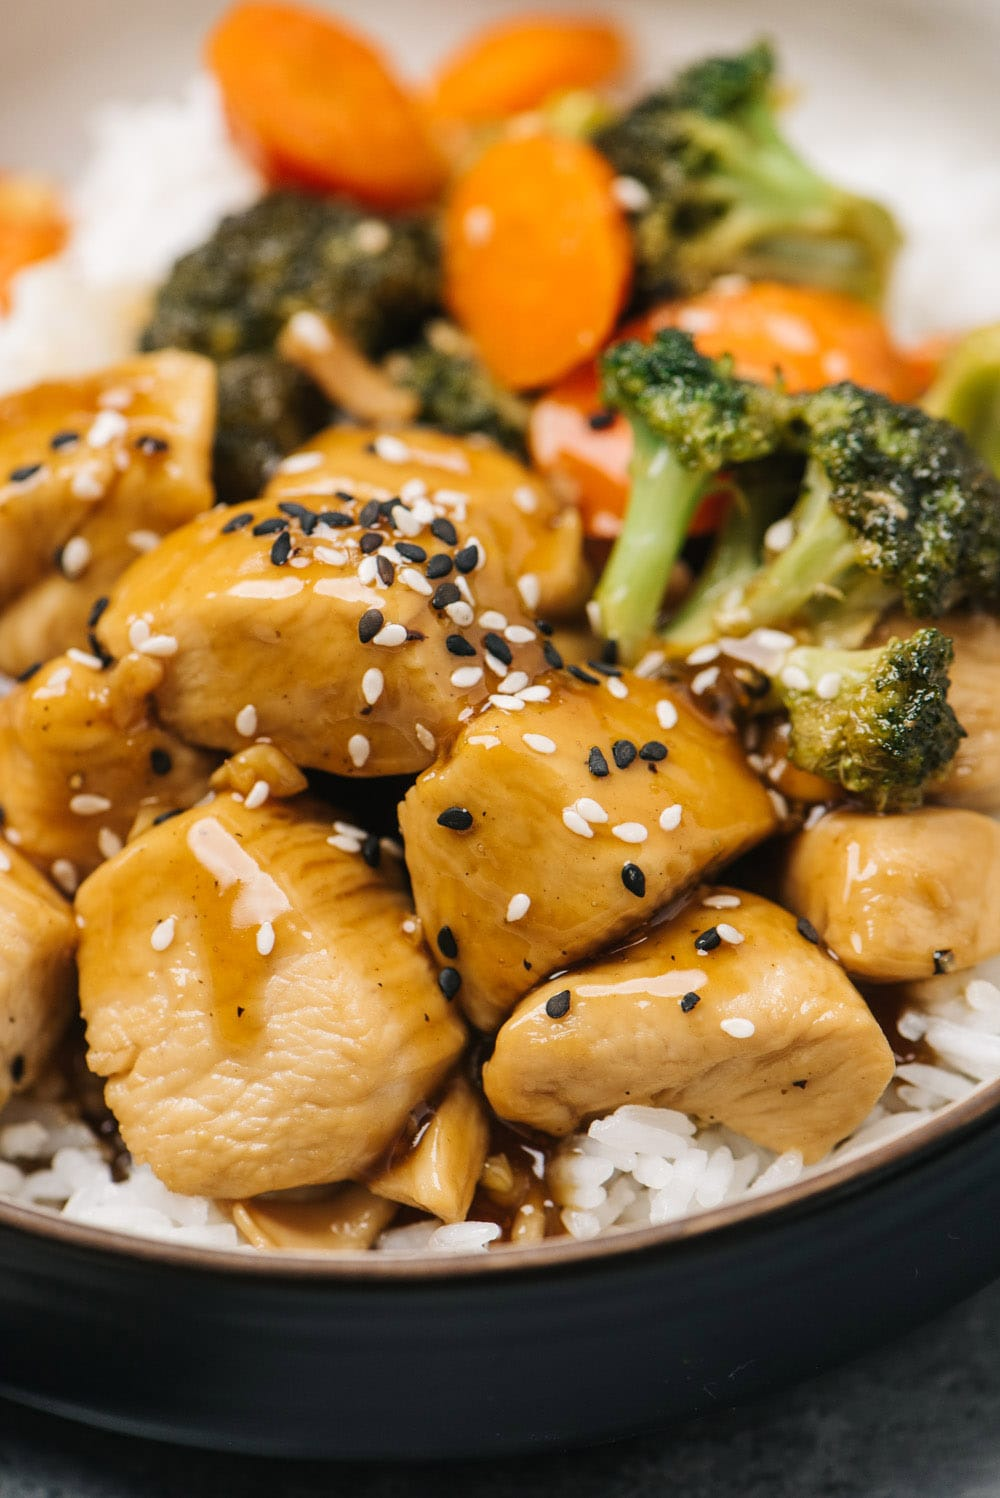 Side view, chicken teriyaki in a bowl with rice, carrots, and broccoli.